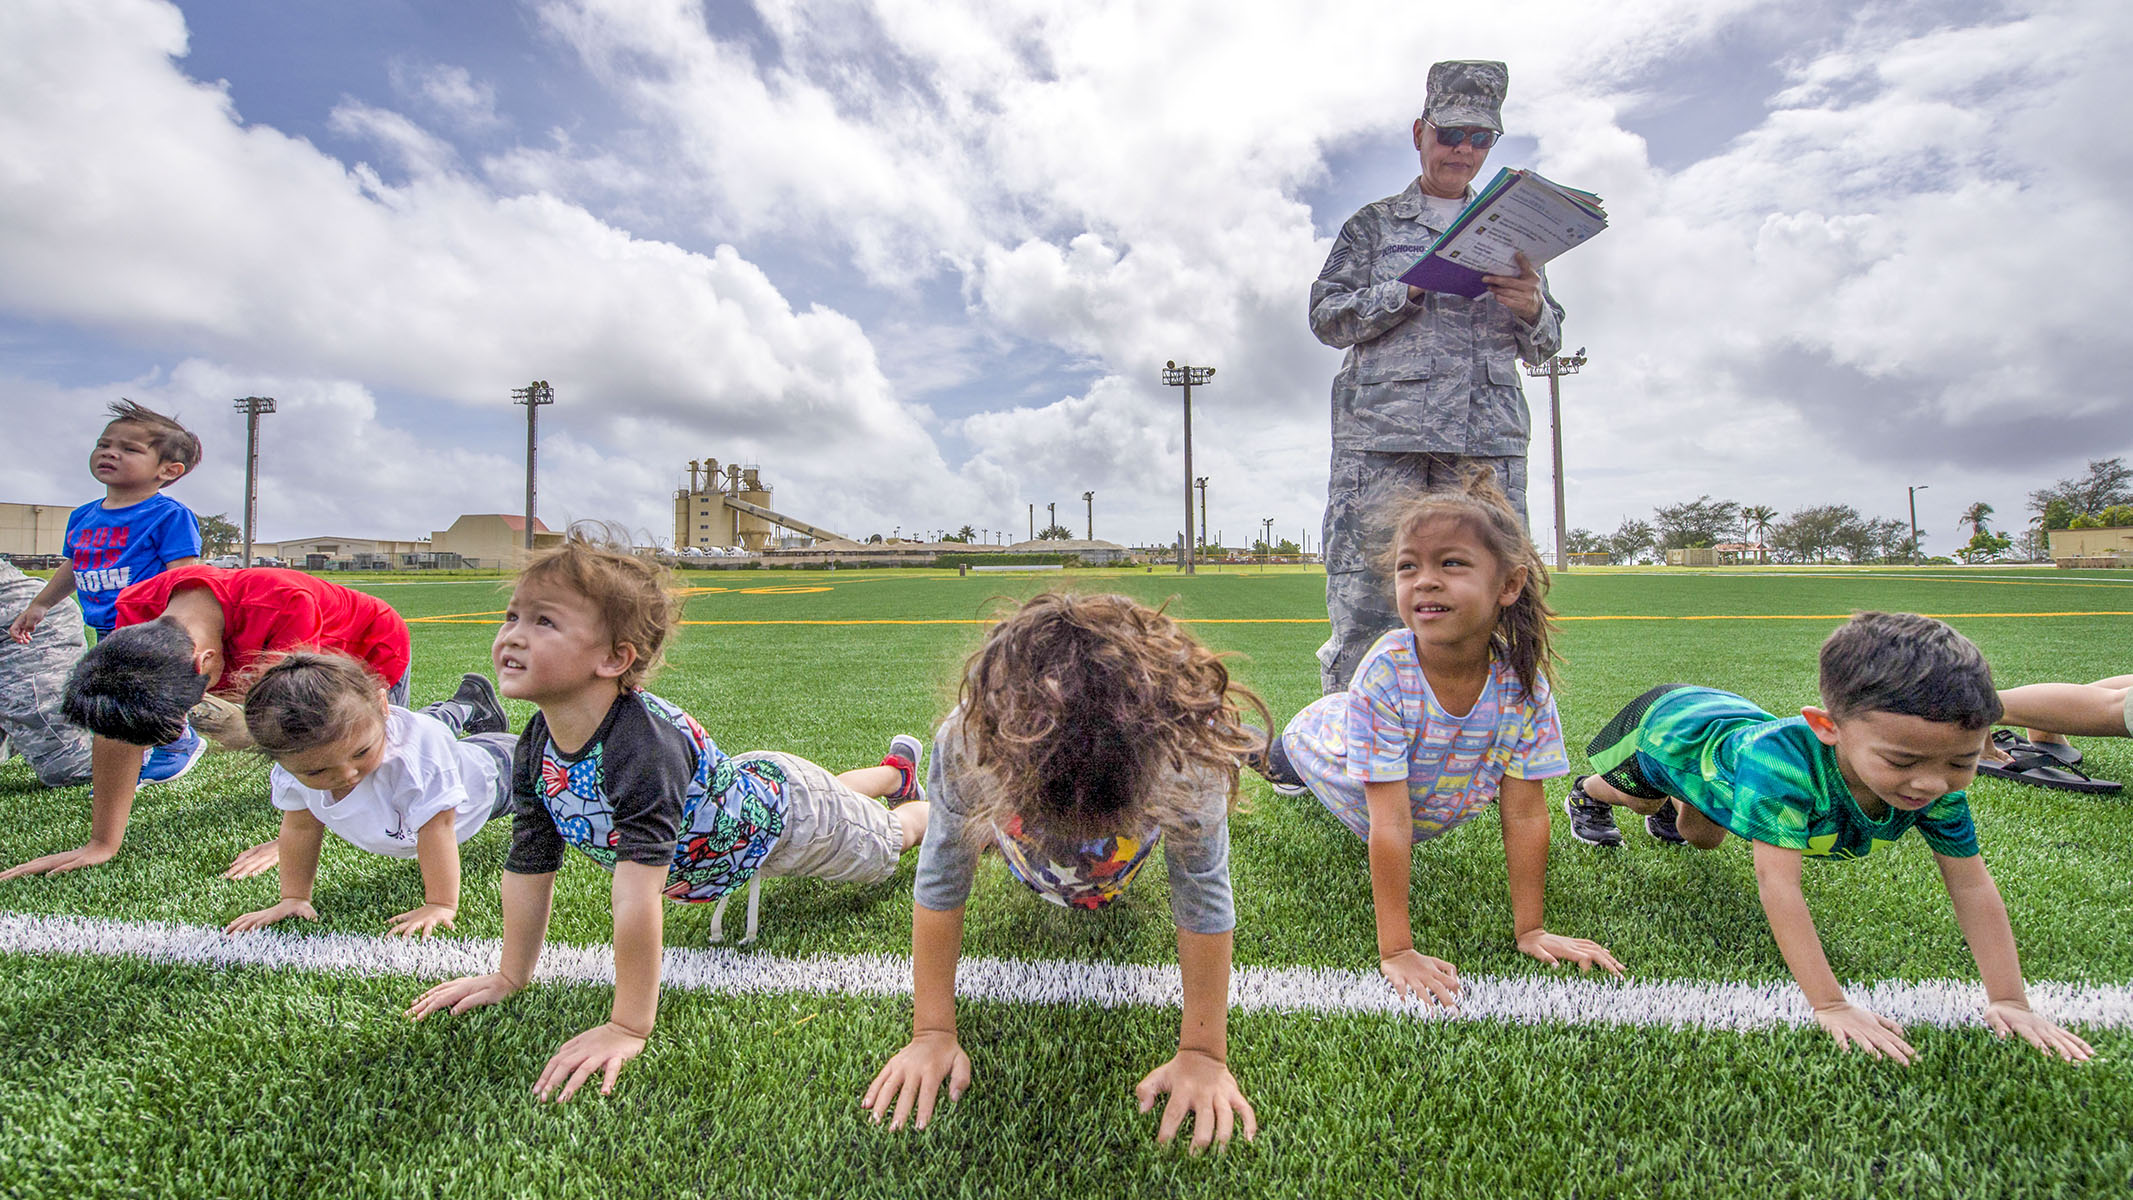 Air Force kids learn their parents' deployment process at Andersen Air Force Base, Guam. Military families shared a playful version of military processing to introduce children of deploying reservists to what their parents will experience when preparing for their deployment. (Staff Sgt. Alexander W. Riedel/Air Force)